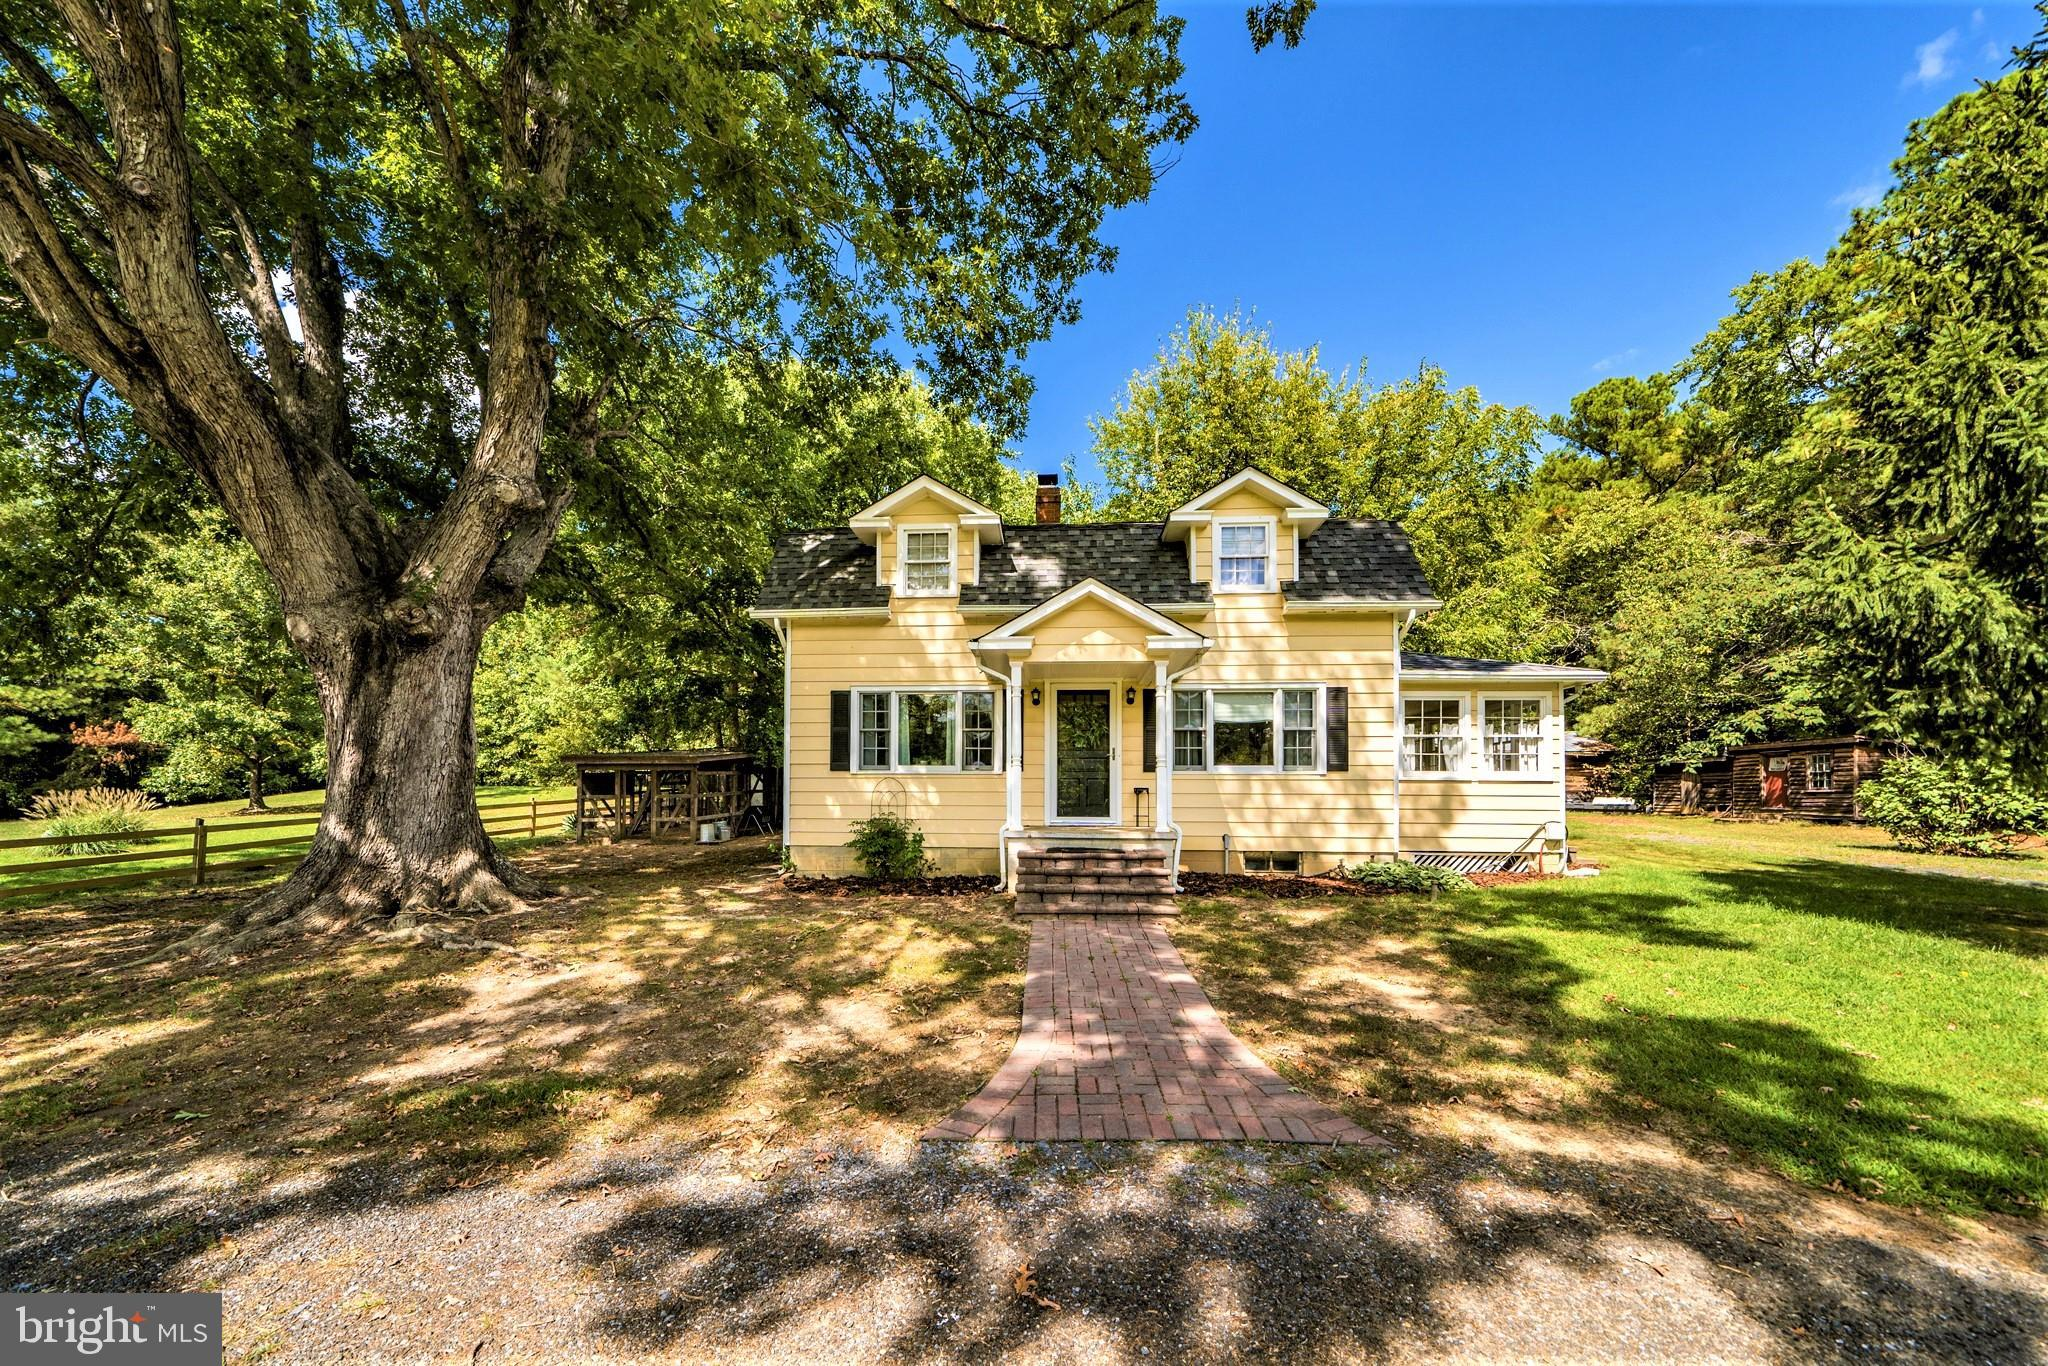 Classic country farmette filled with modern touches and vintage elegance. Set on 5.33 acres of a pre